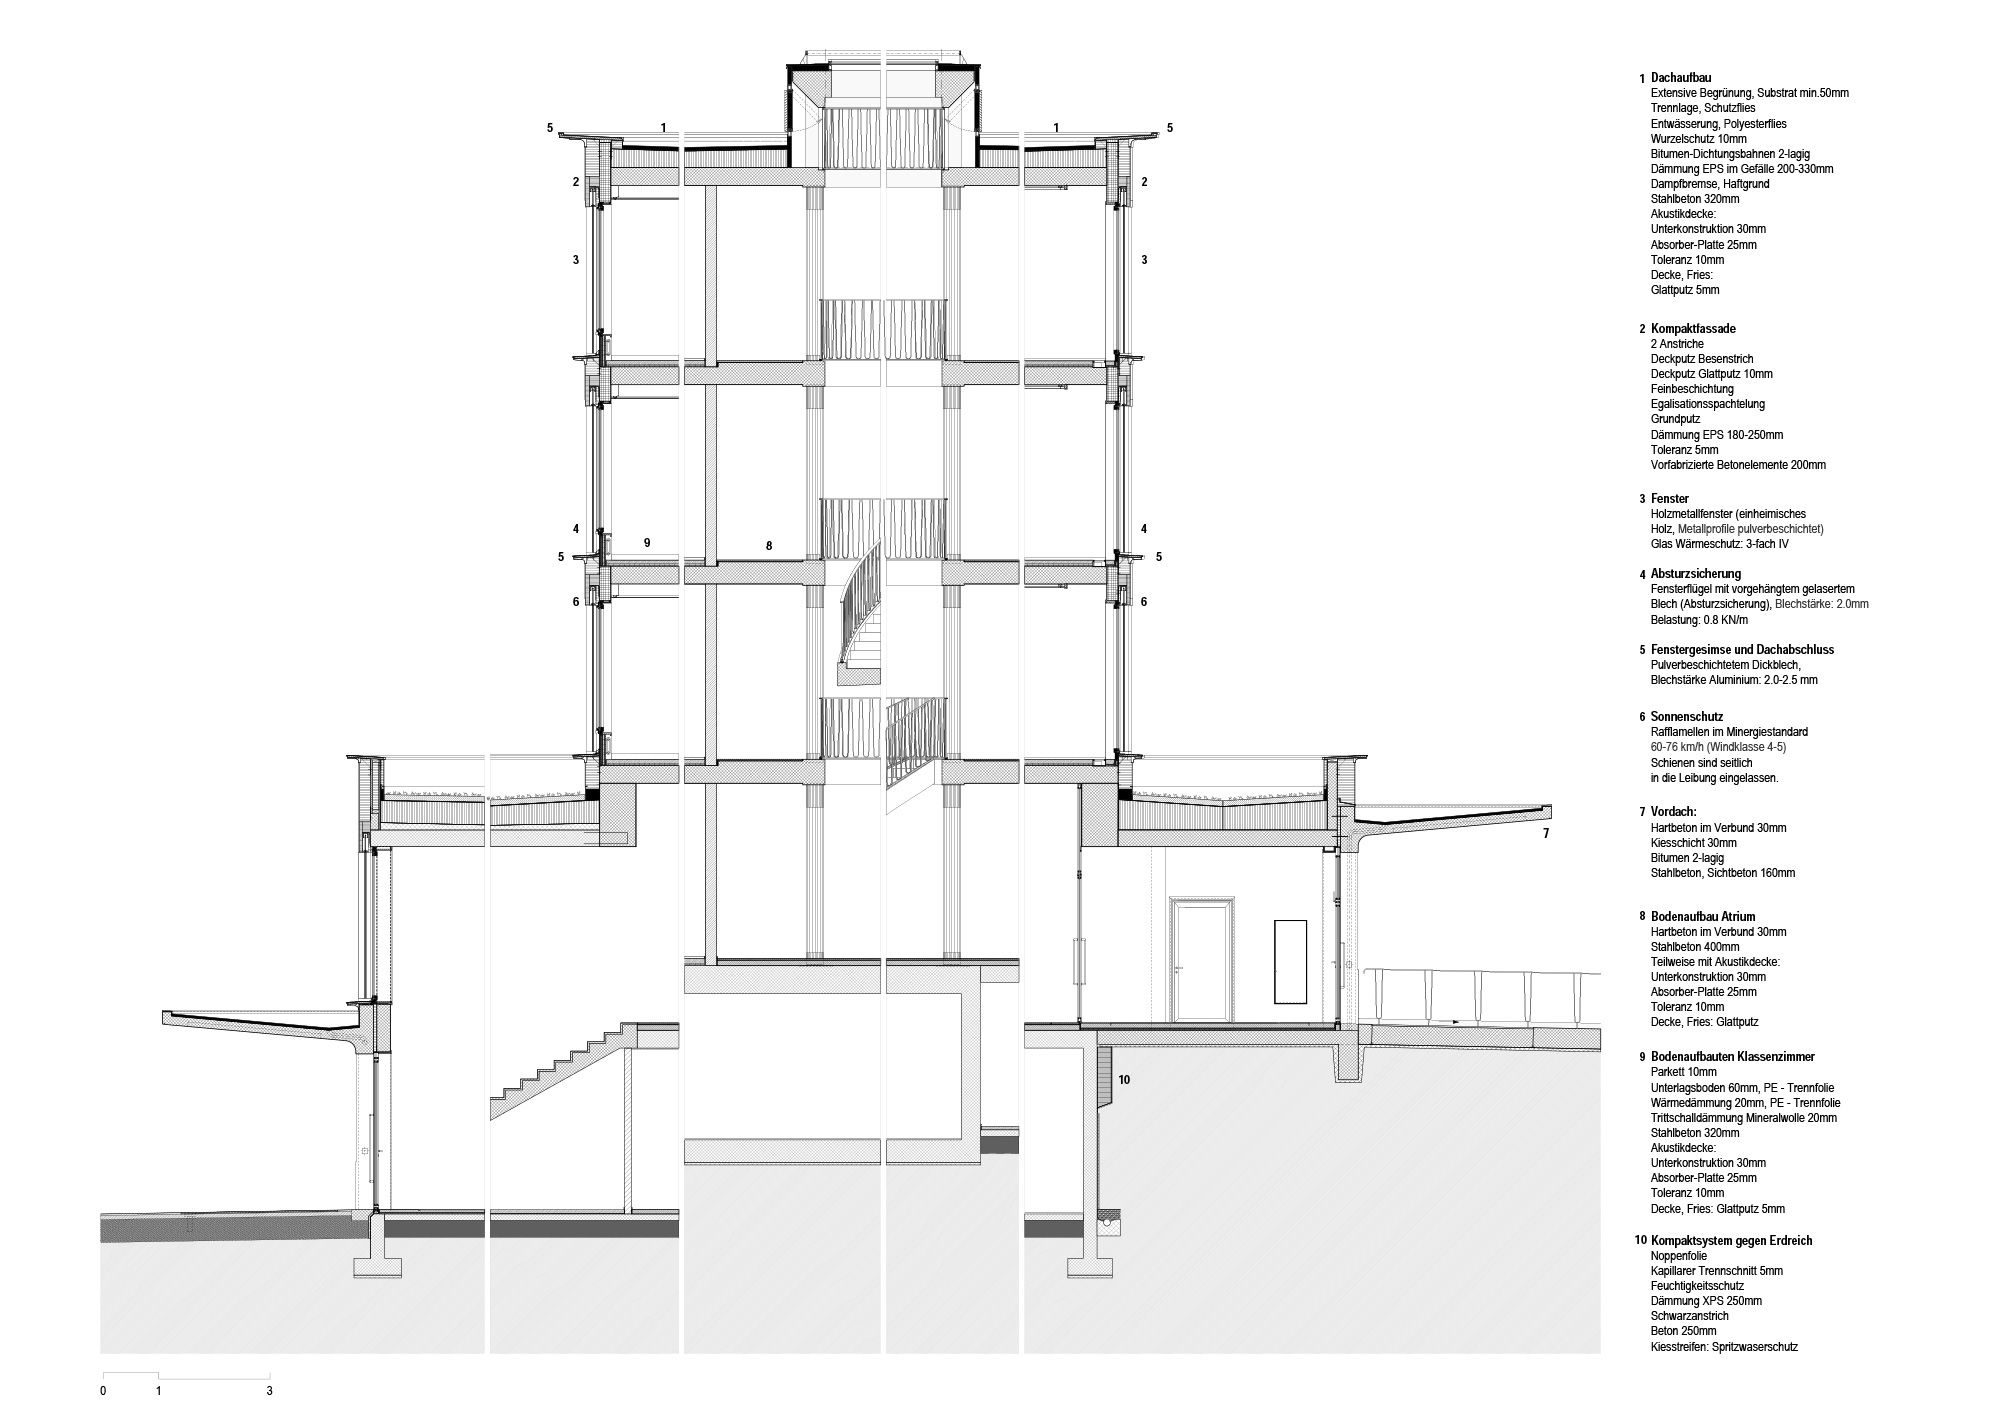 Pin By Martyna Michalik On Arch Diagram Floor Plans